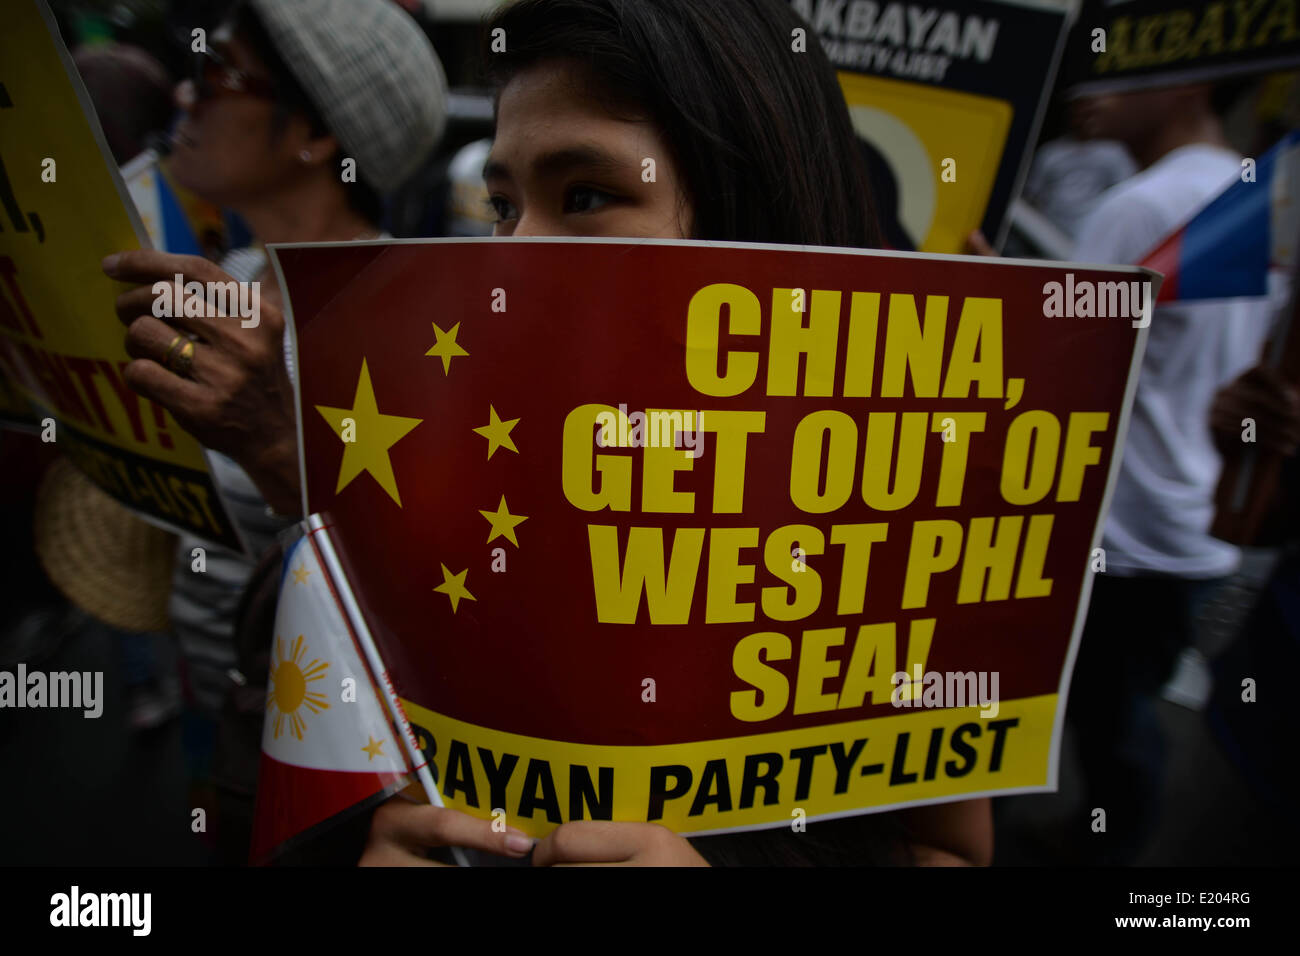 Makati, Philippines. 12th June, 2014. A demonstrator holds a placard during a protest outside the Chinese consulate - Stock Image